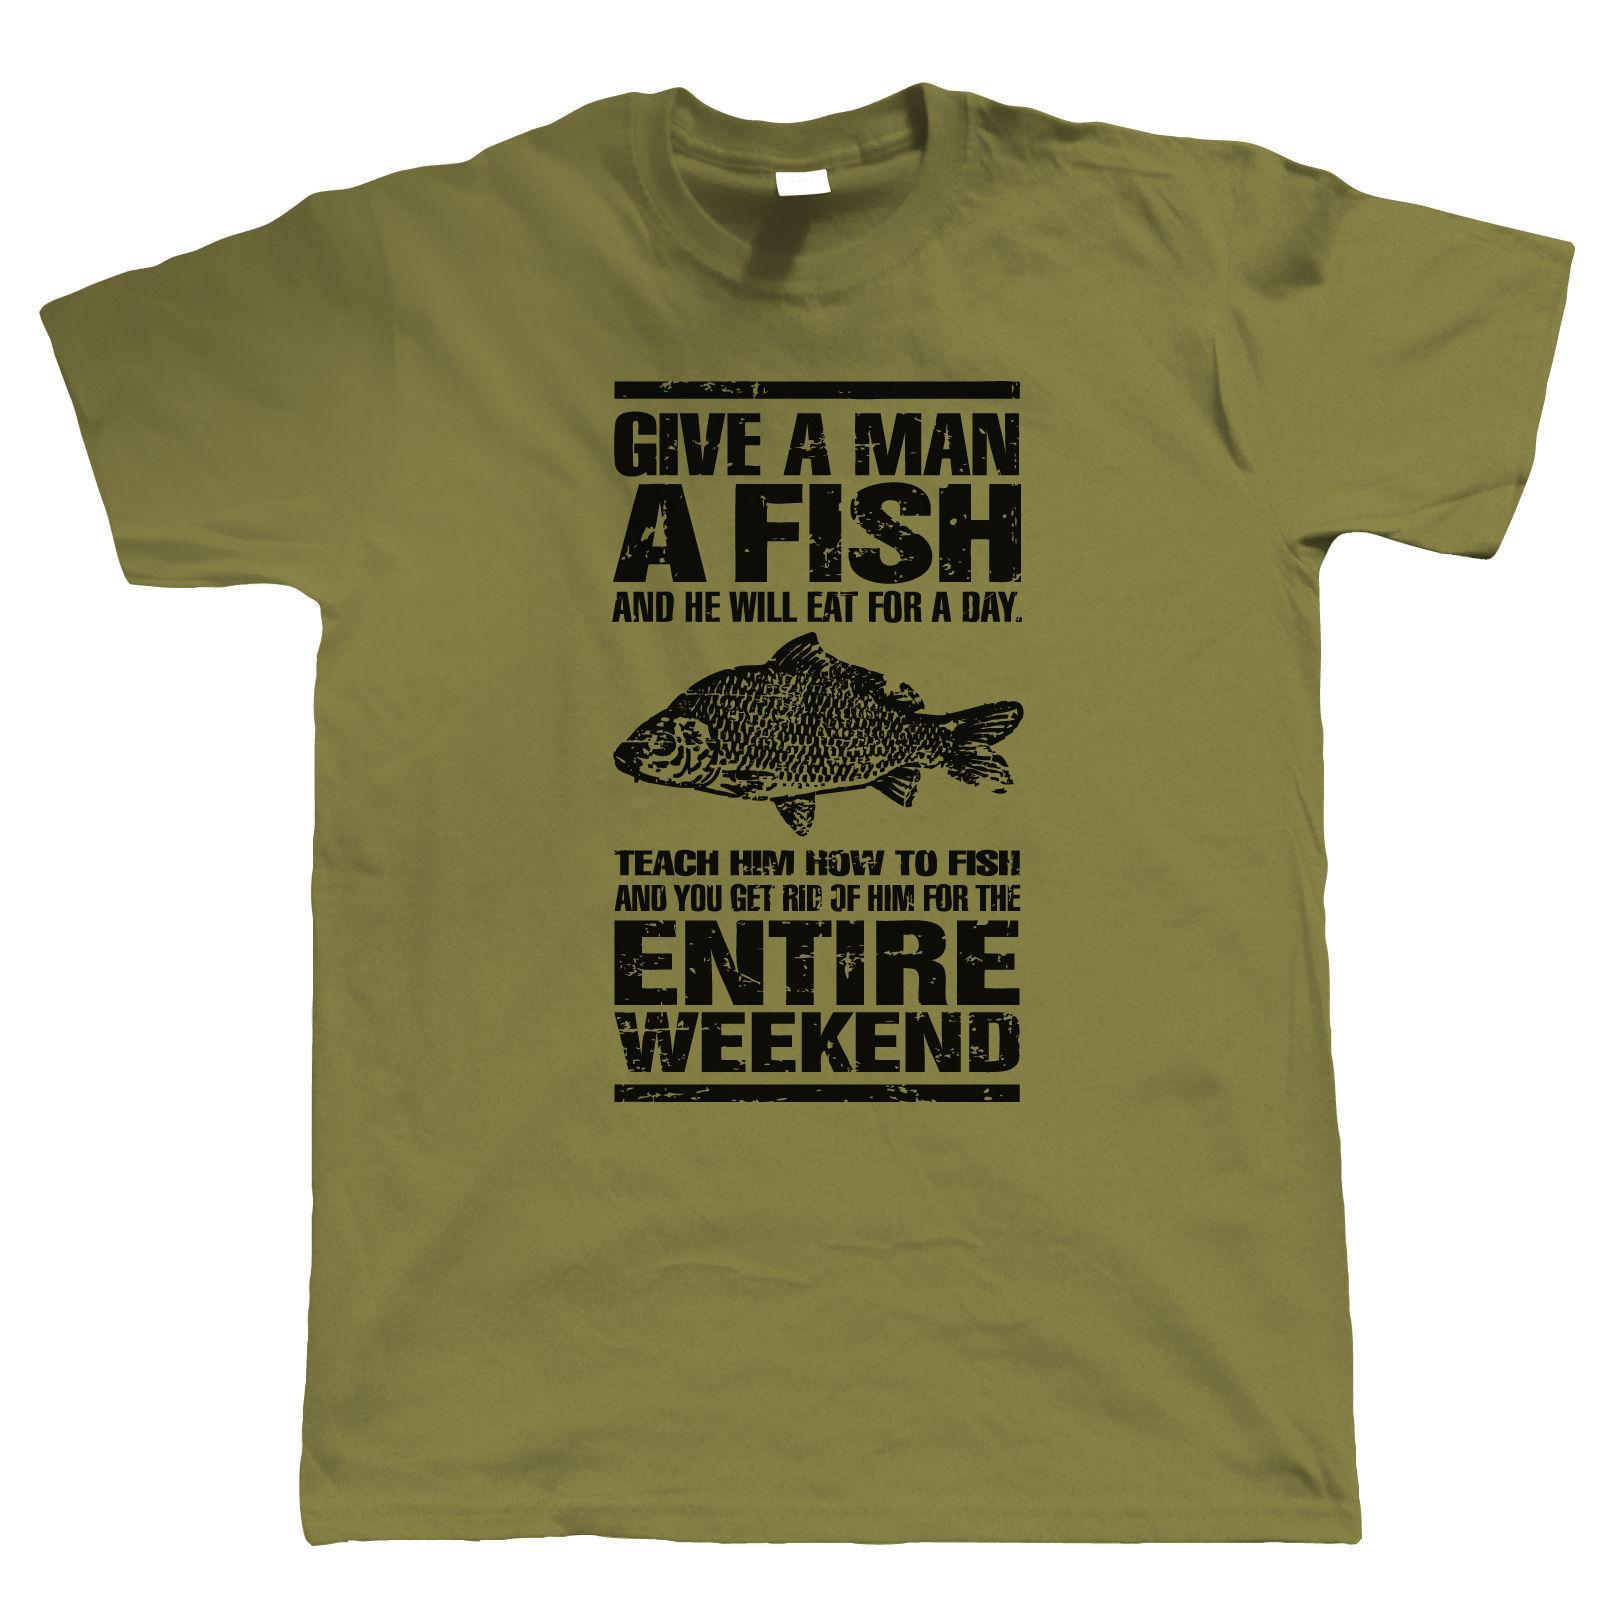 f8fb0f7a Give A Man A Fish Funny Carp Fishing T Shirt Angling Gift For Dad Grandad  Him Party T Shirts Collared T Shirts From Shirtifdesign, $11.01| DHgate.Com